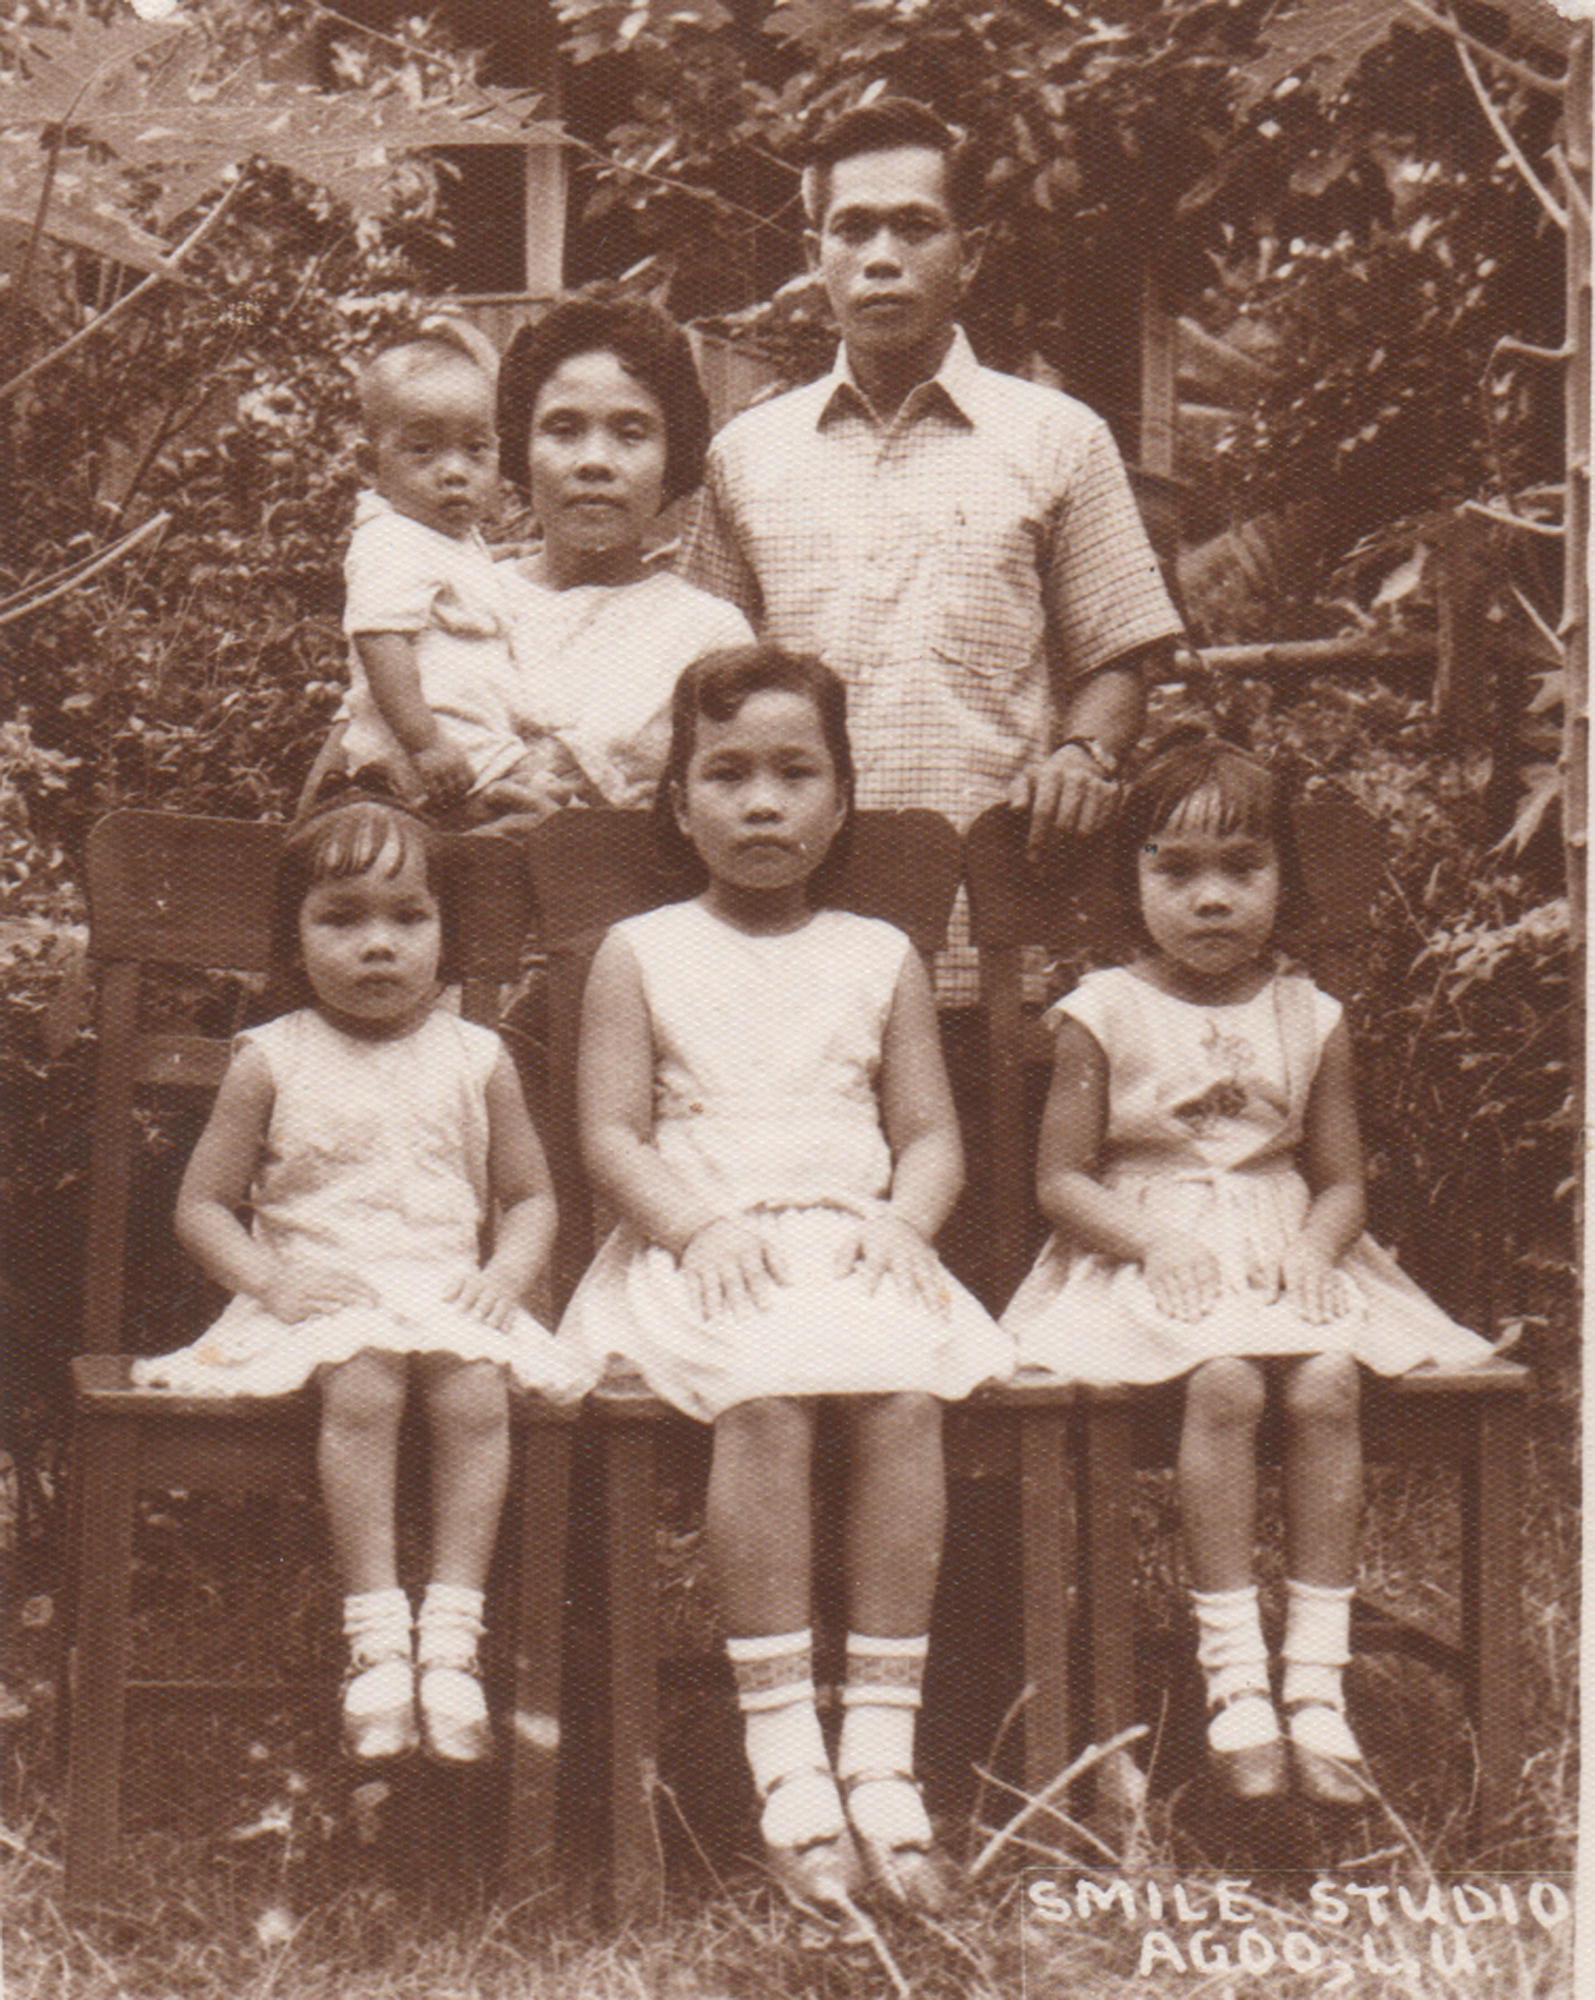 THROWBACK. Rose and Ed Gayo with their children, Esmie, Thelma, Myrna and Ross.